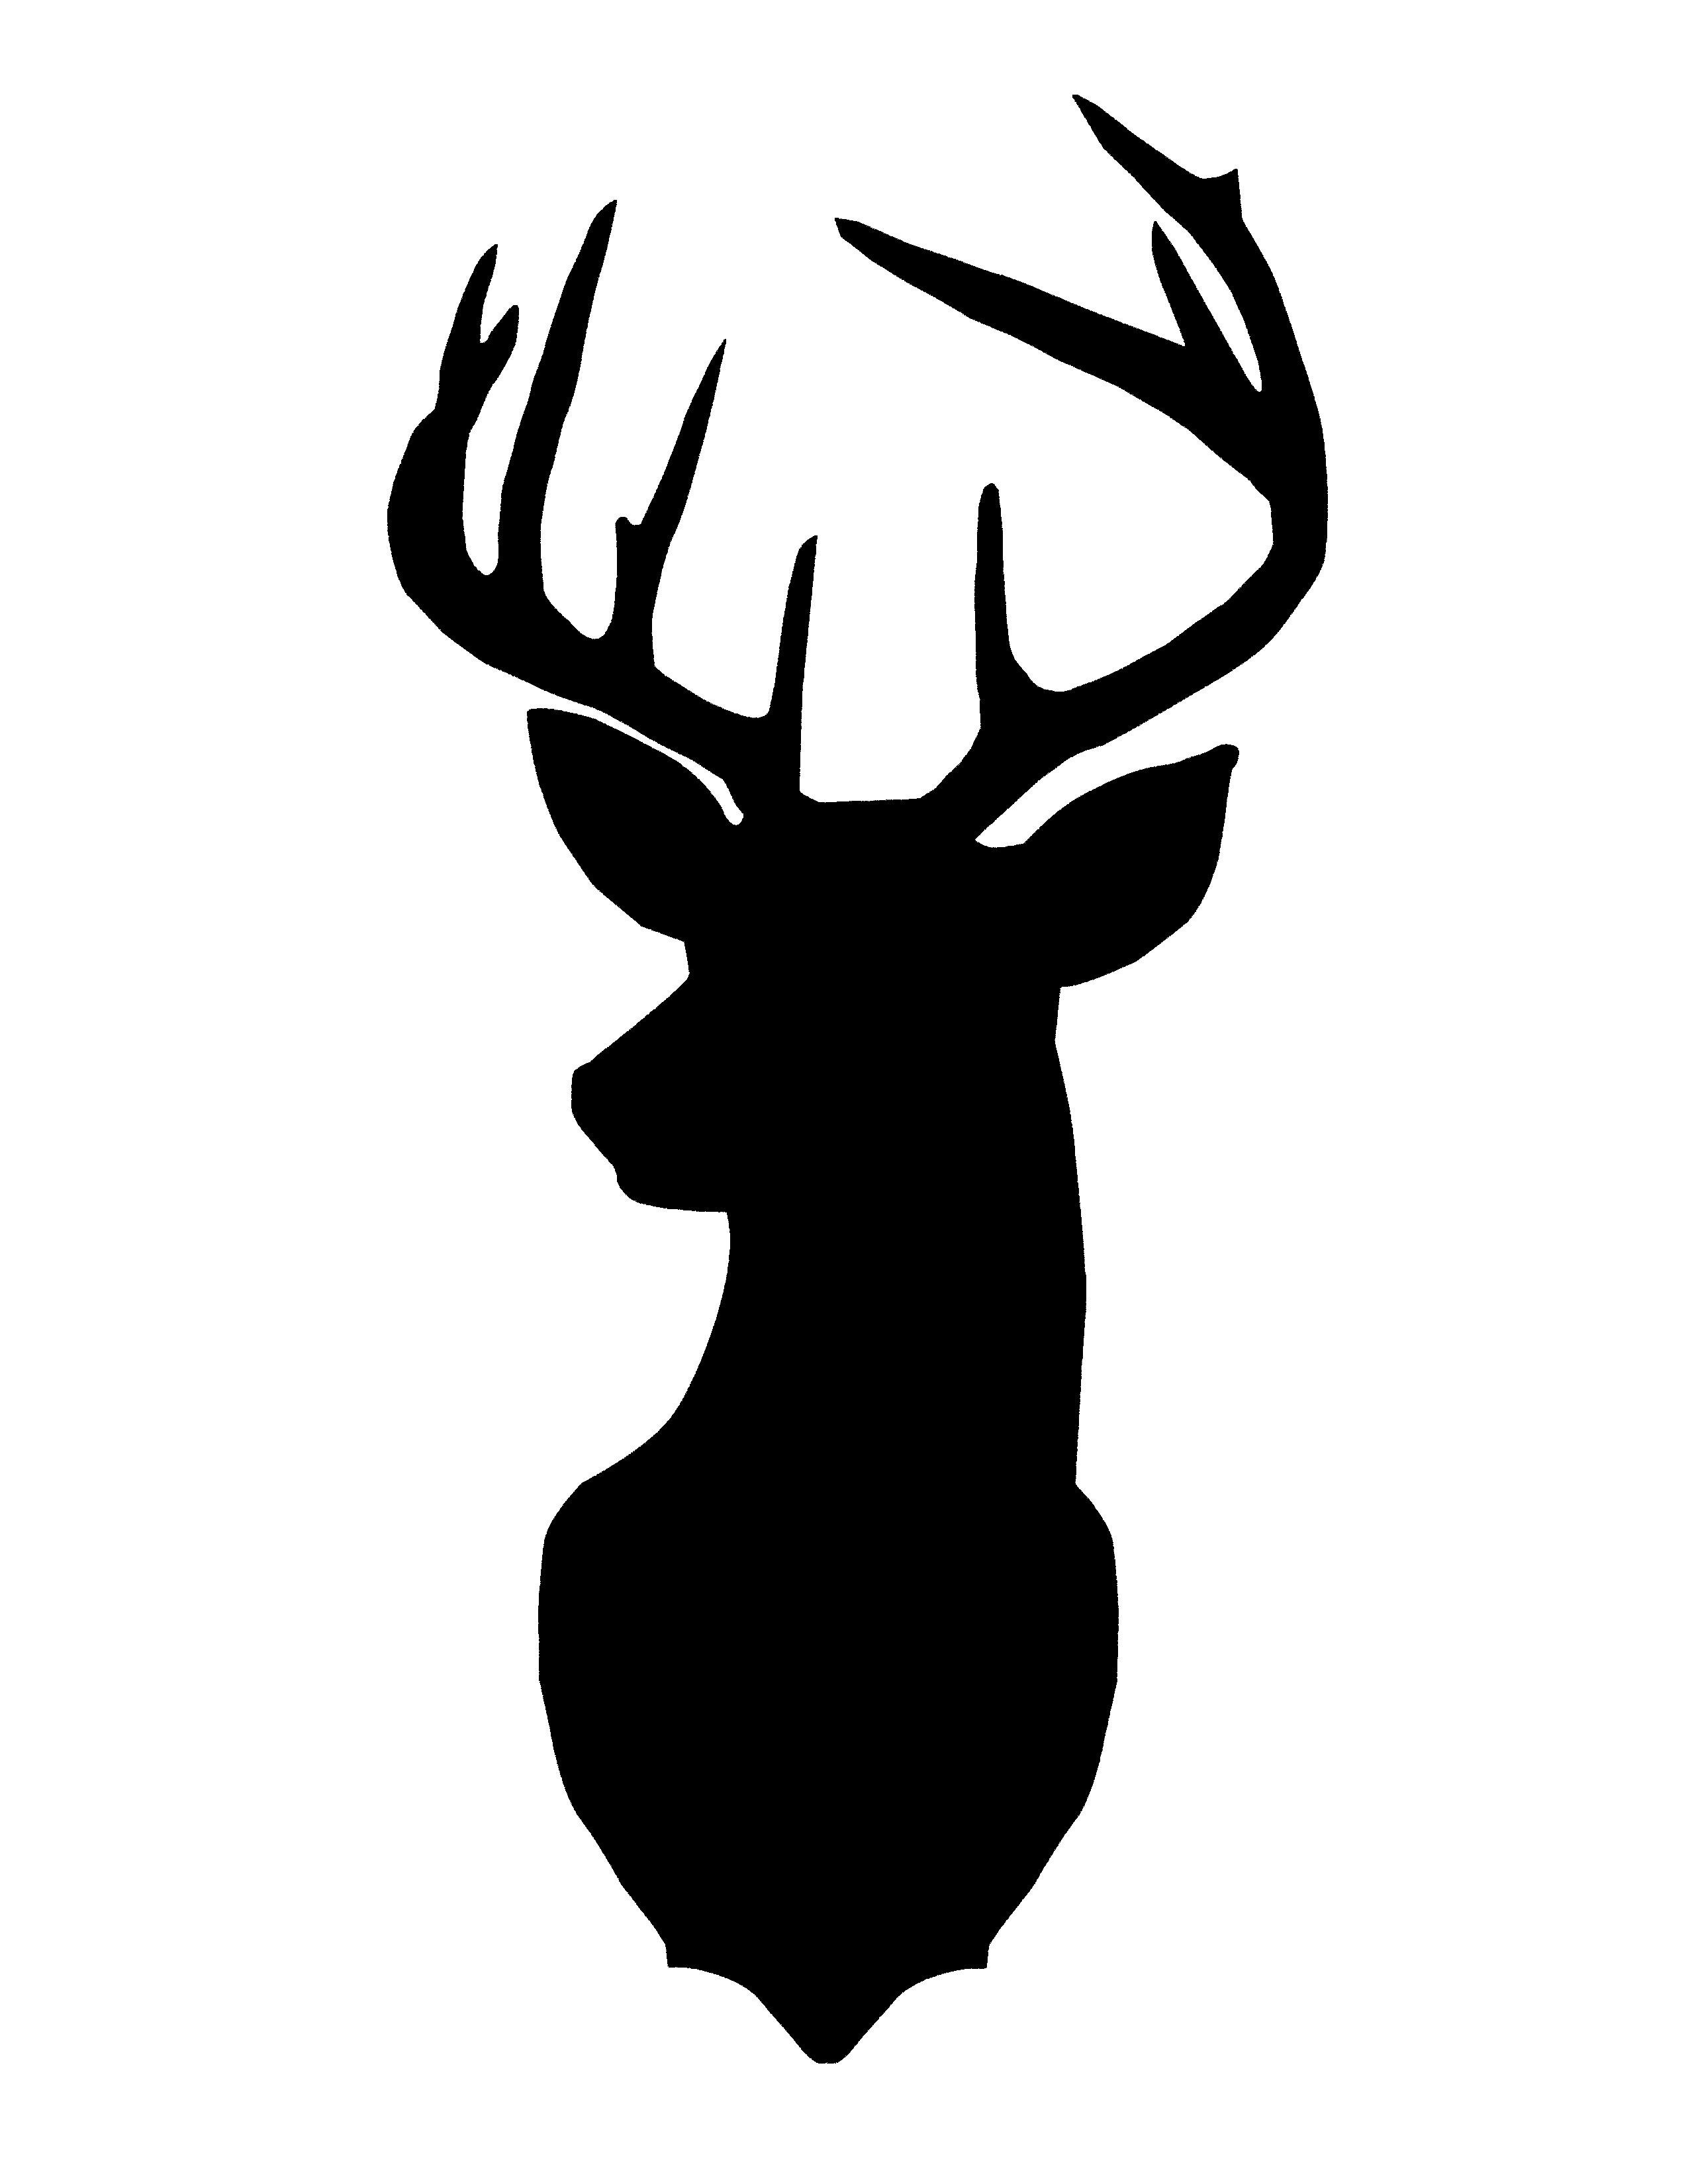 2550x3300 Best Hd Head Silhouette Printable Patterns For Clipart Deer Photos